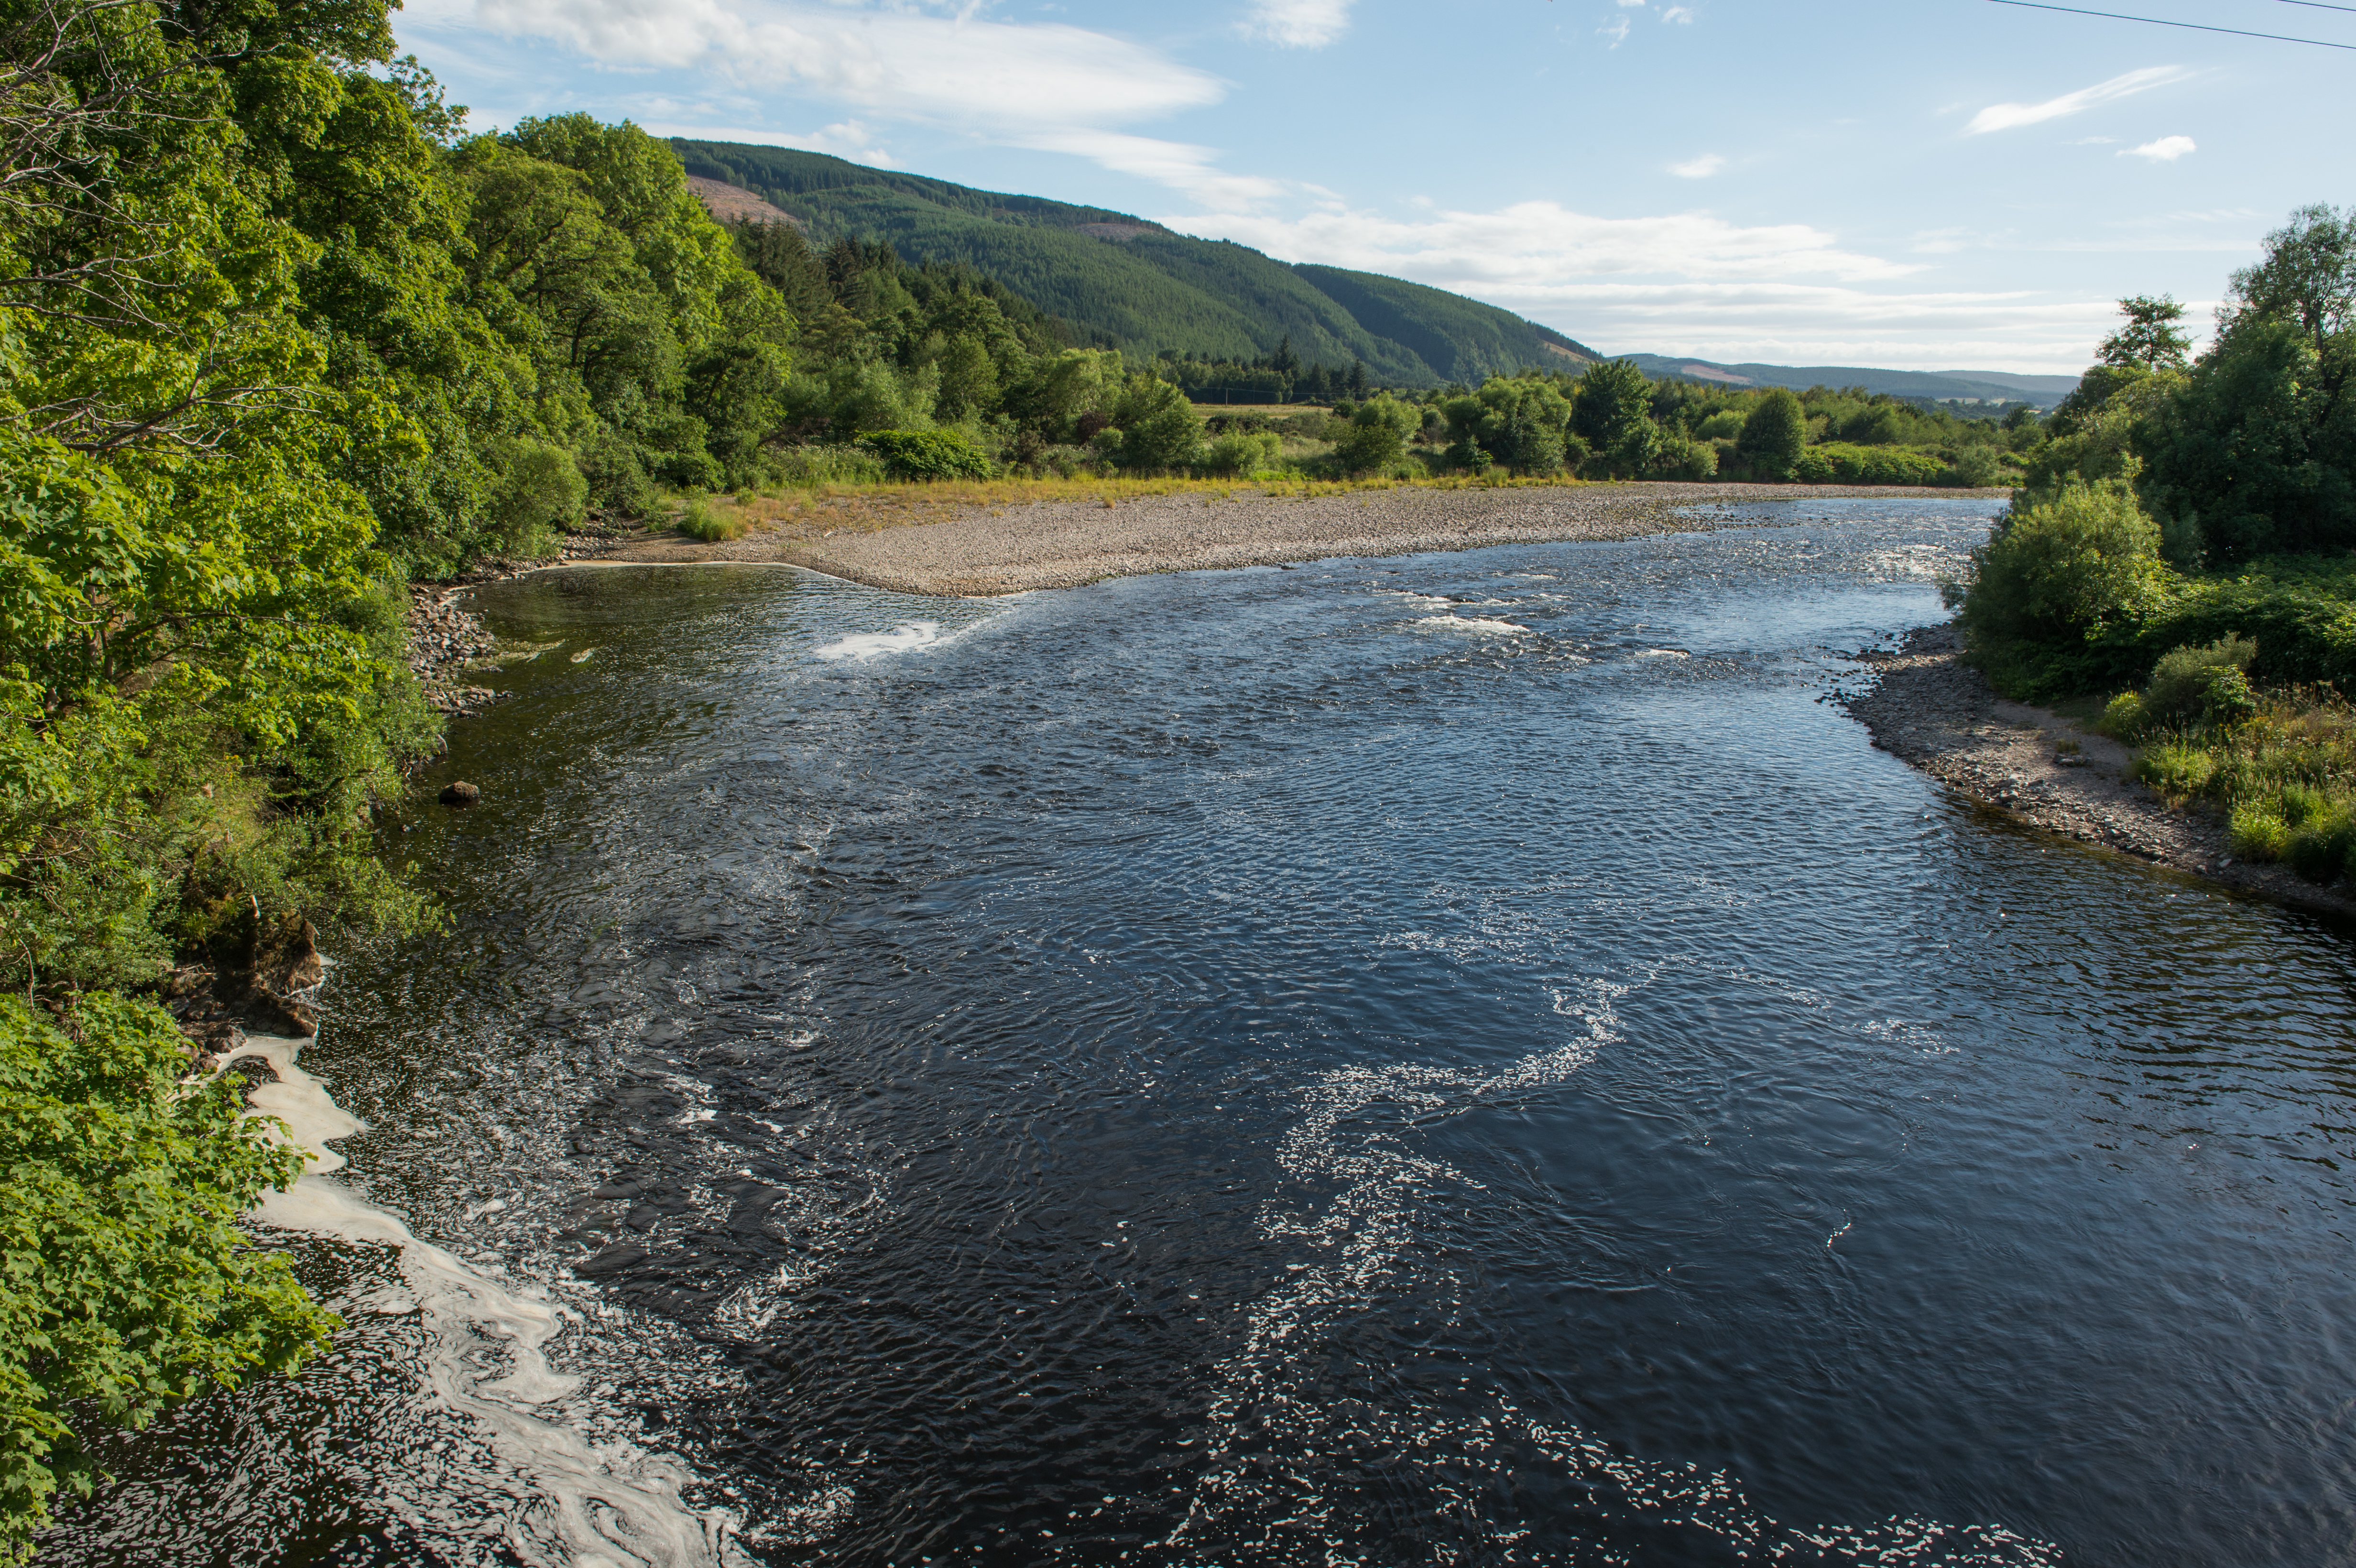 The River Spey at Boat O Brig in Moray. Picture by Jason Hedges.